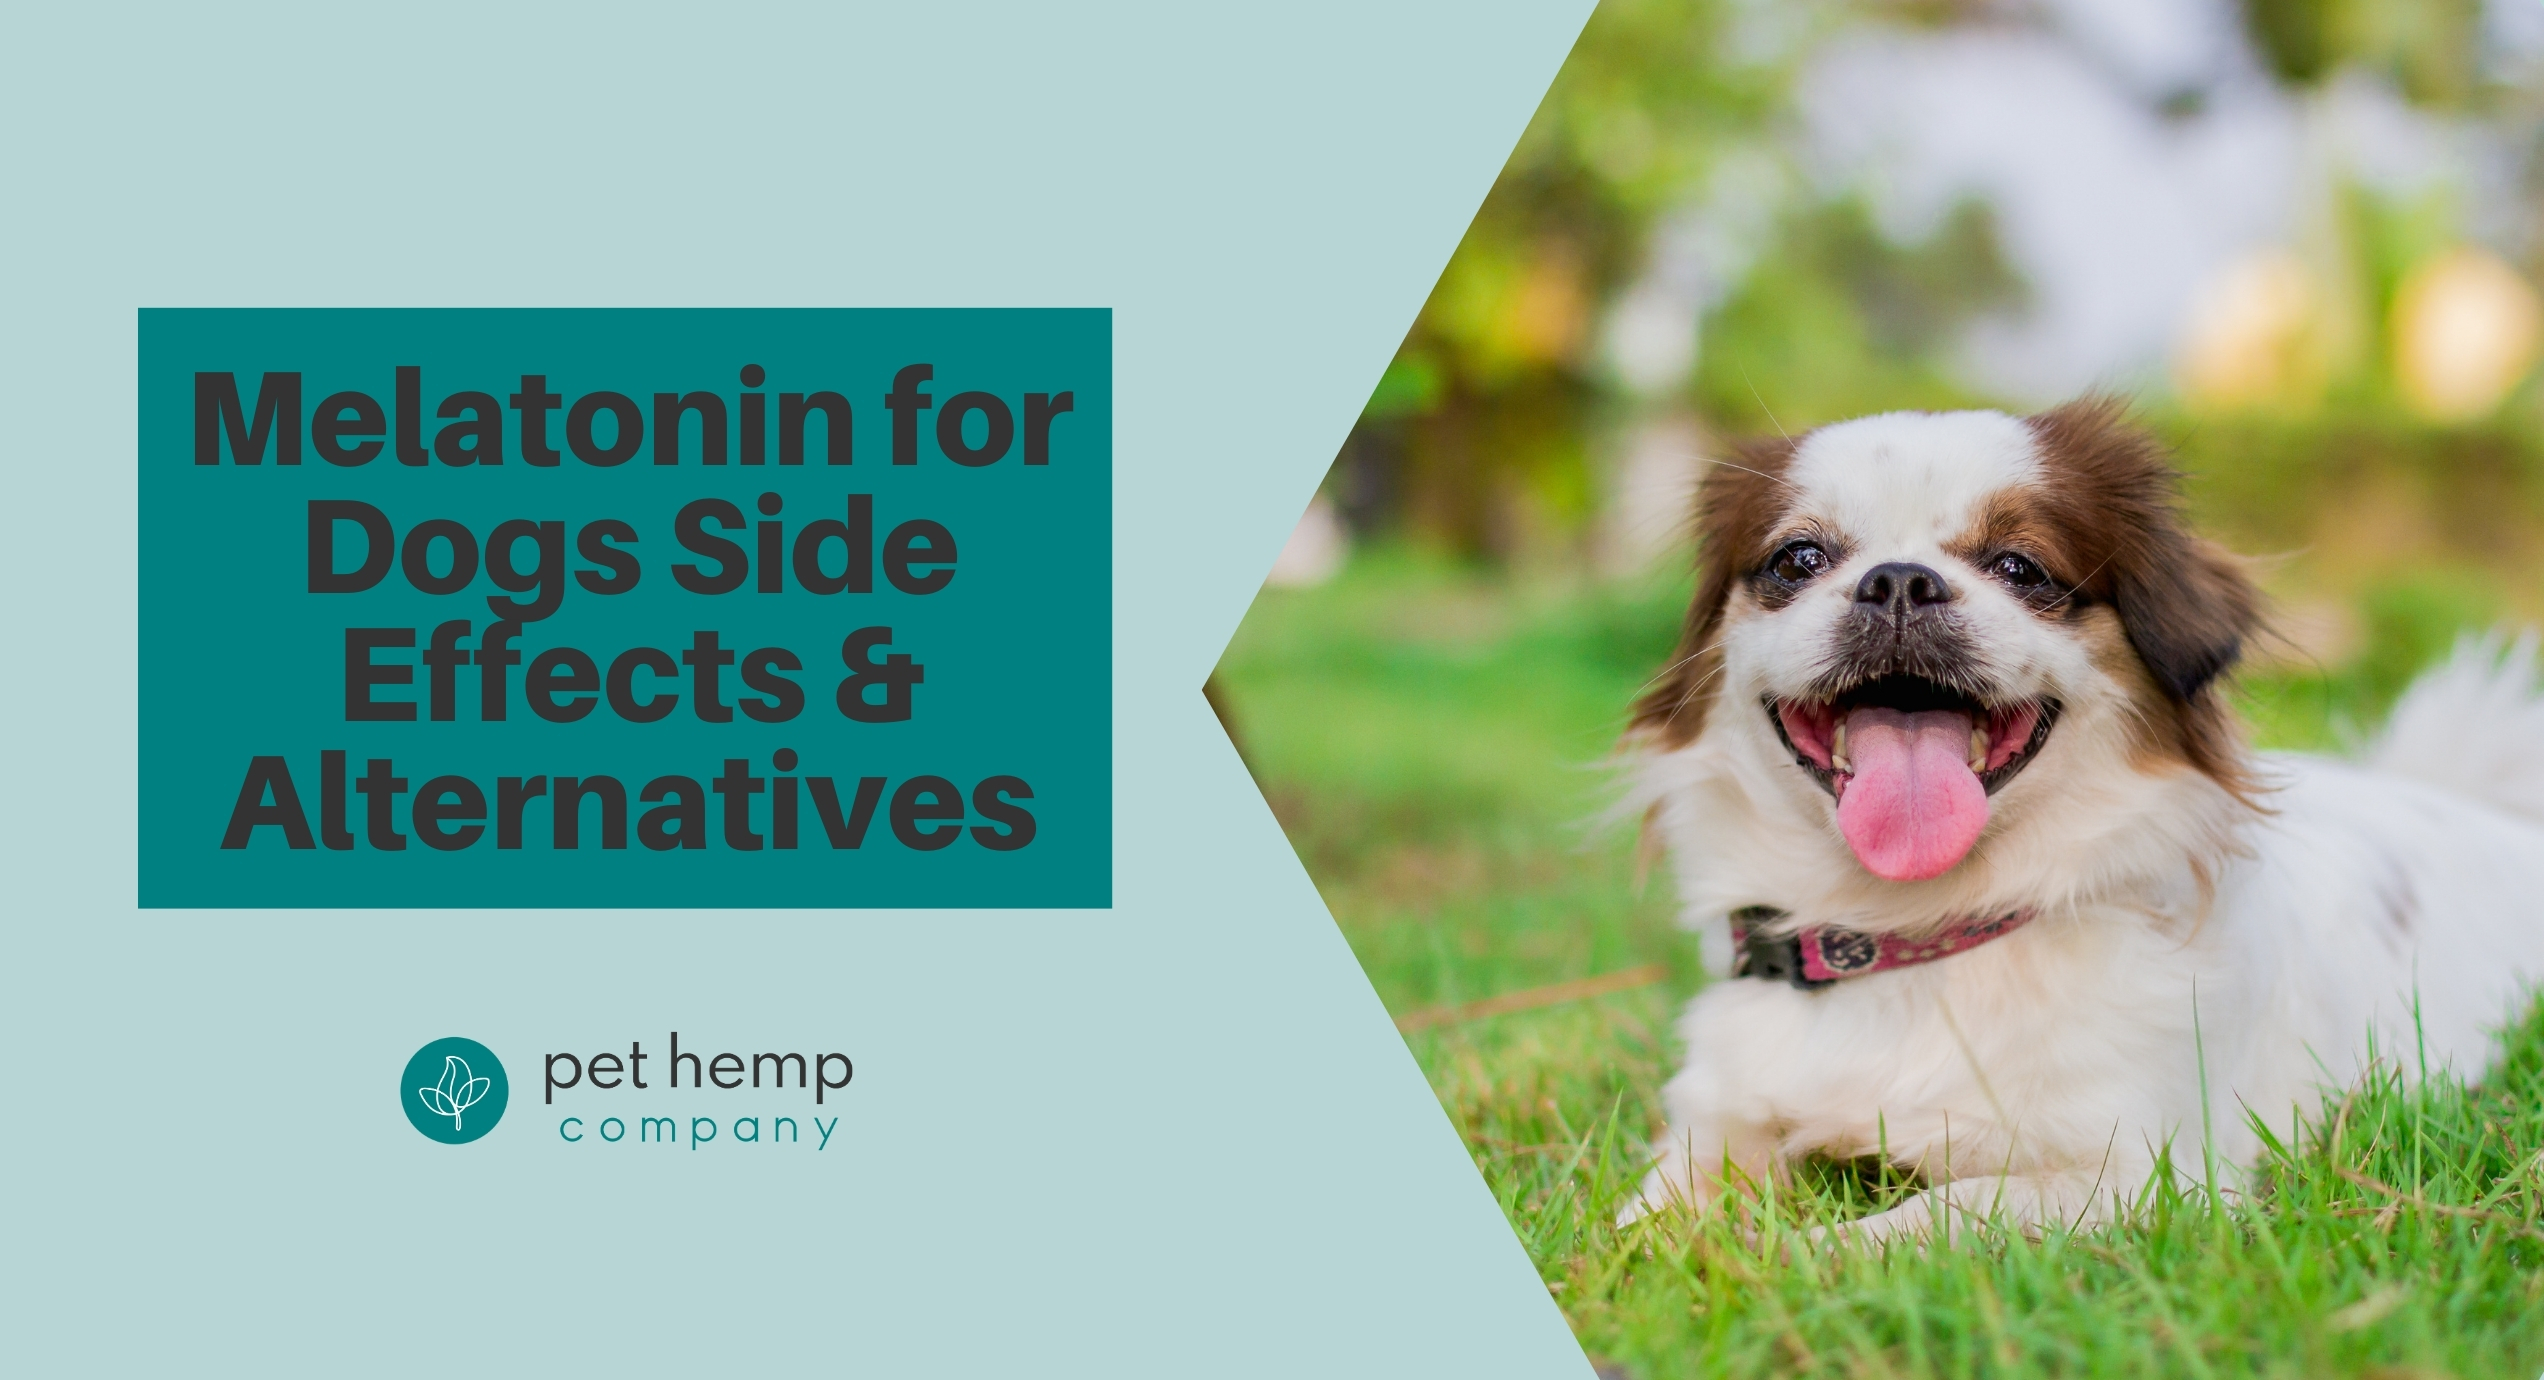 melatonin for dogs side effects alternatives